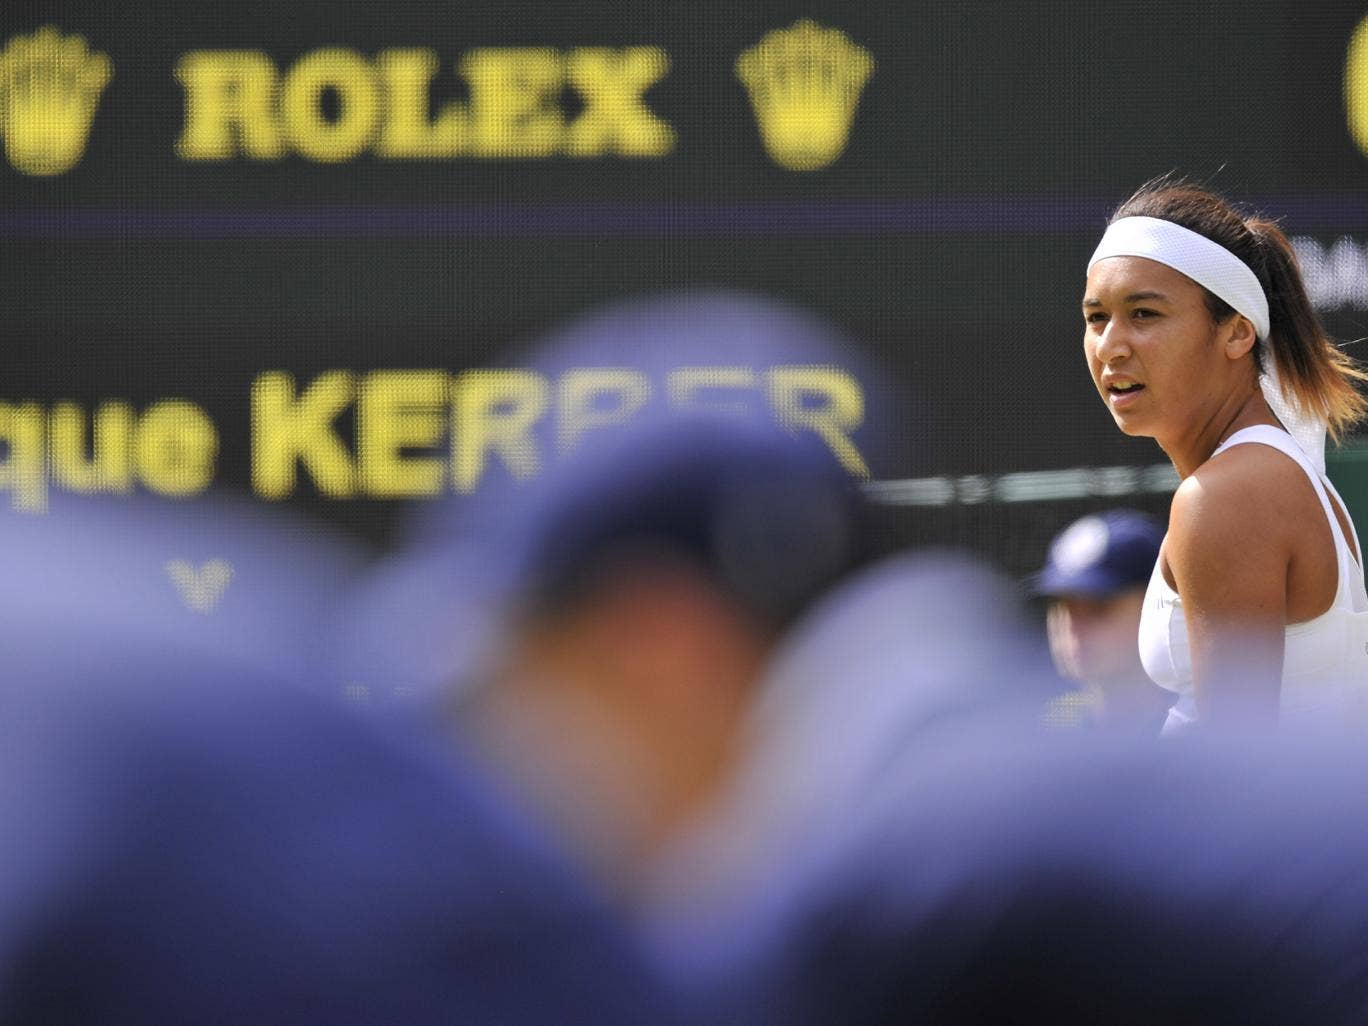 Britain's Heather Watson (R) looks on during her women's singles second round defeat to Germany's Angelique Kerber